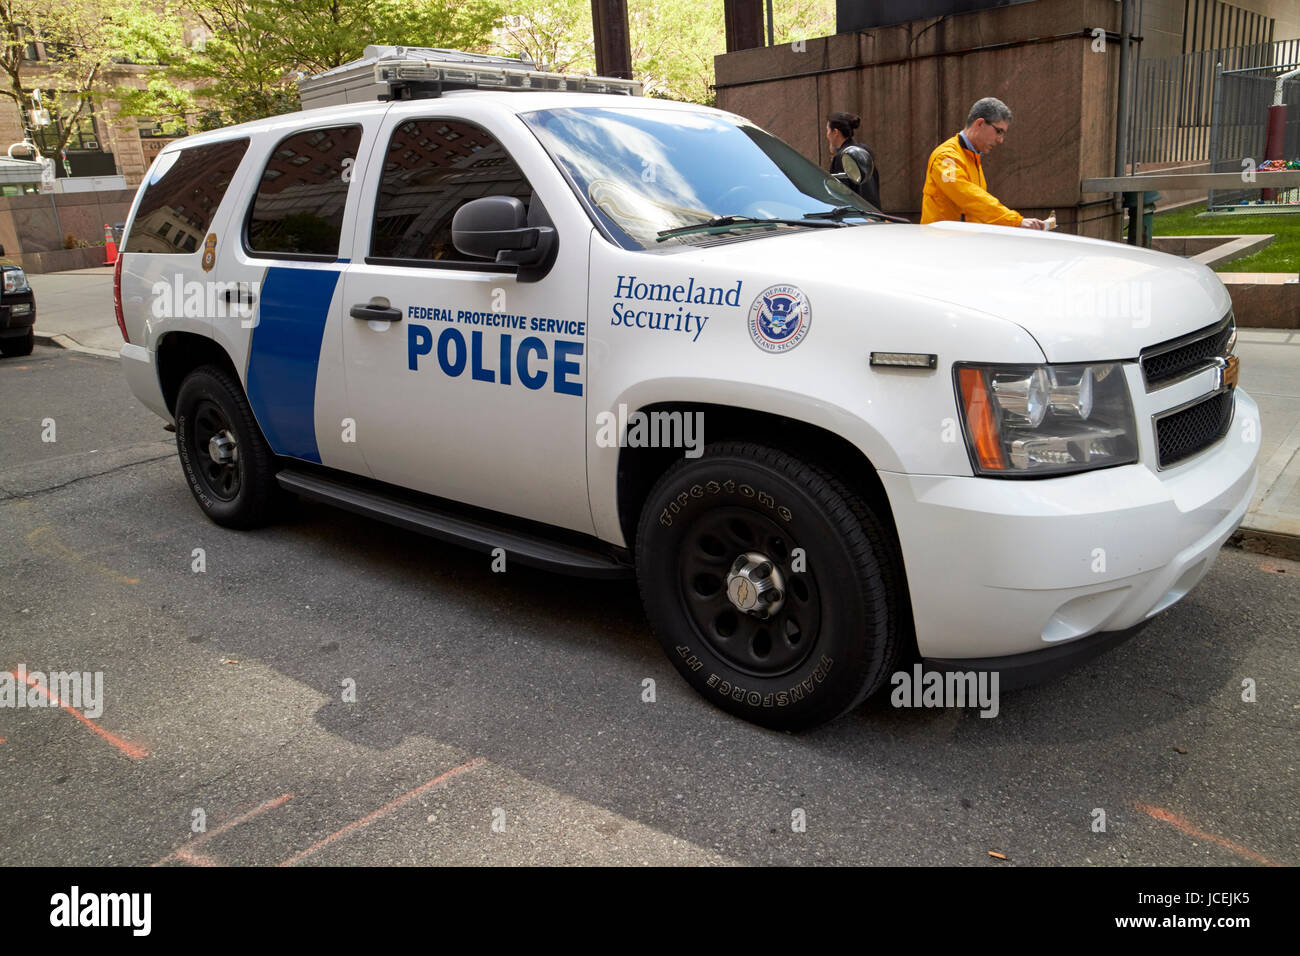 federal protective police homeland security chevy suv vehicle New York City USA - Stock Image